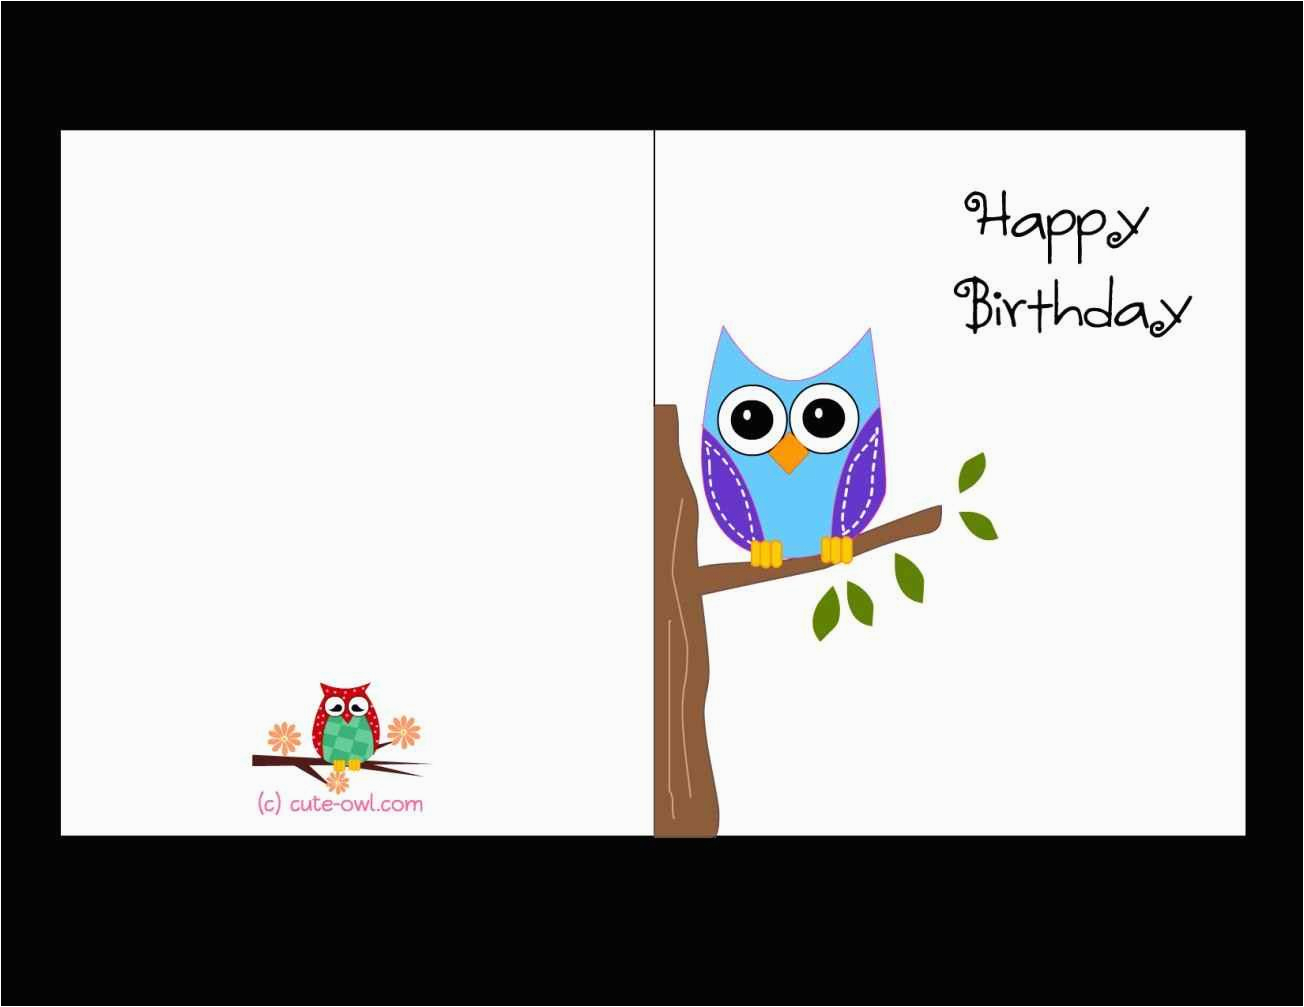 photo about Printable Funny Birthday Card titled Free of charge Printable Humorous Birthday Playing cards for Her Absolutely free Printable